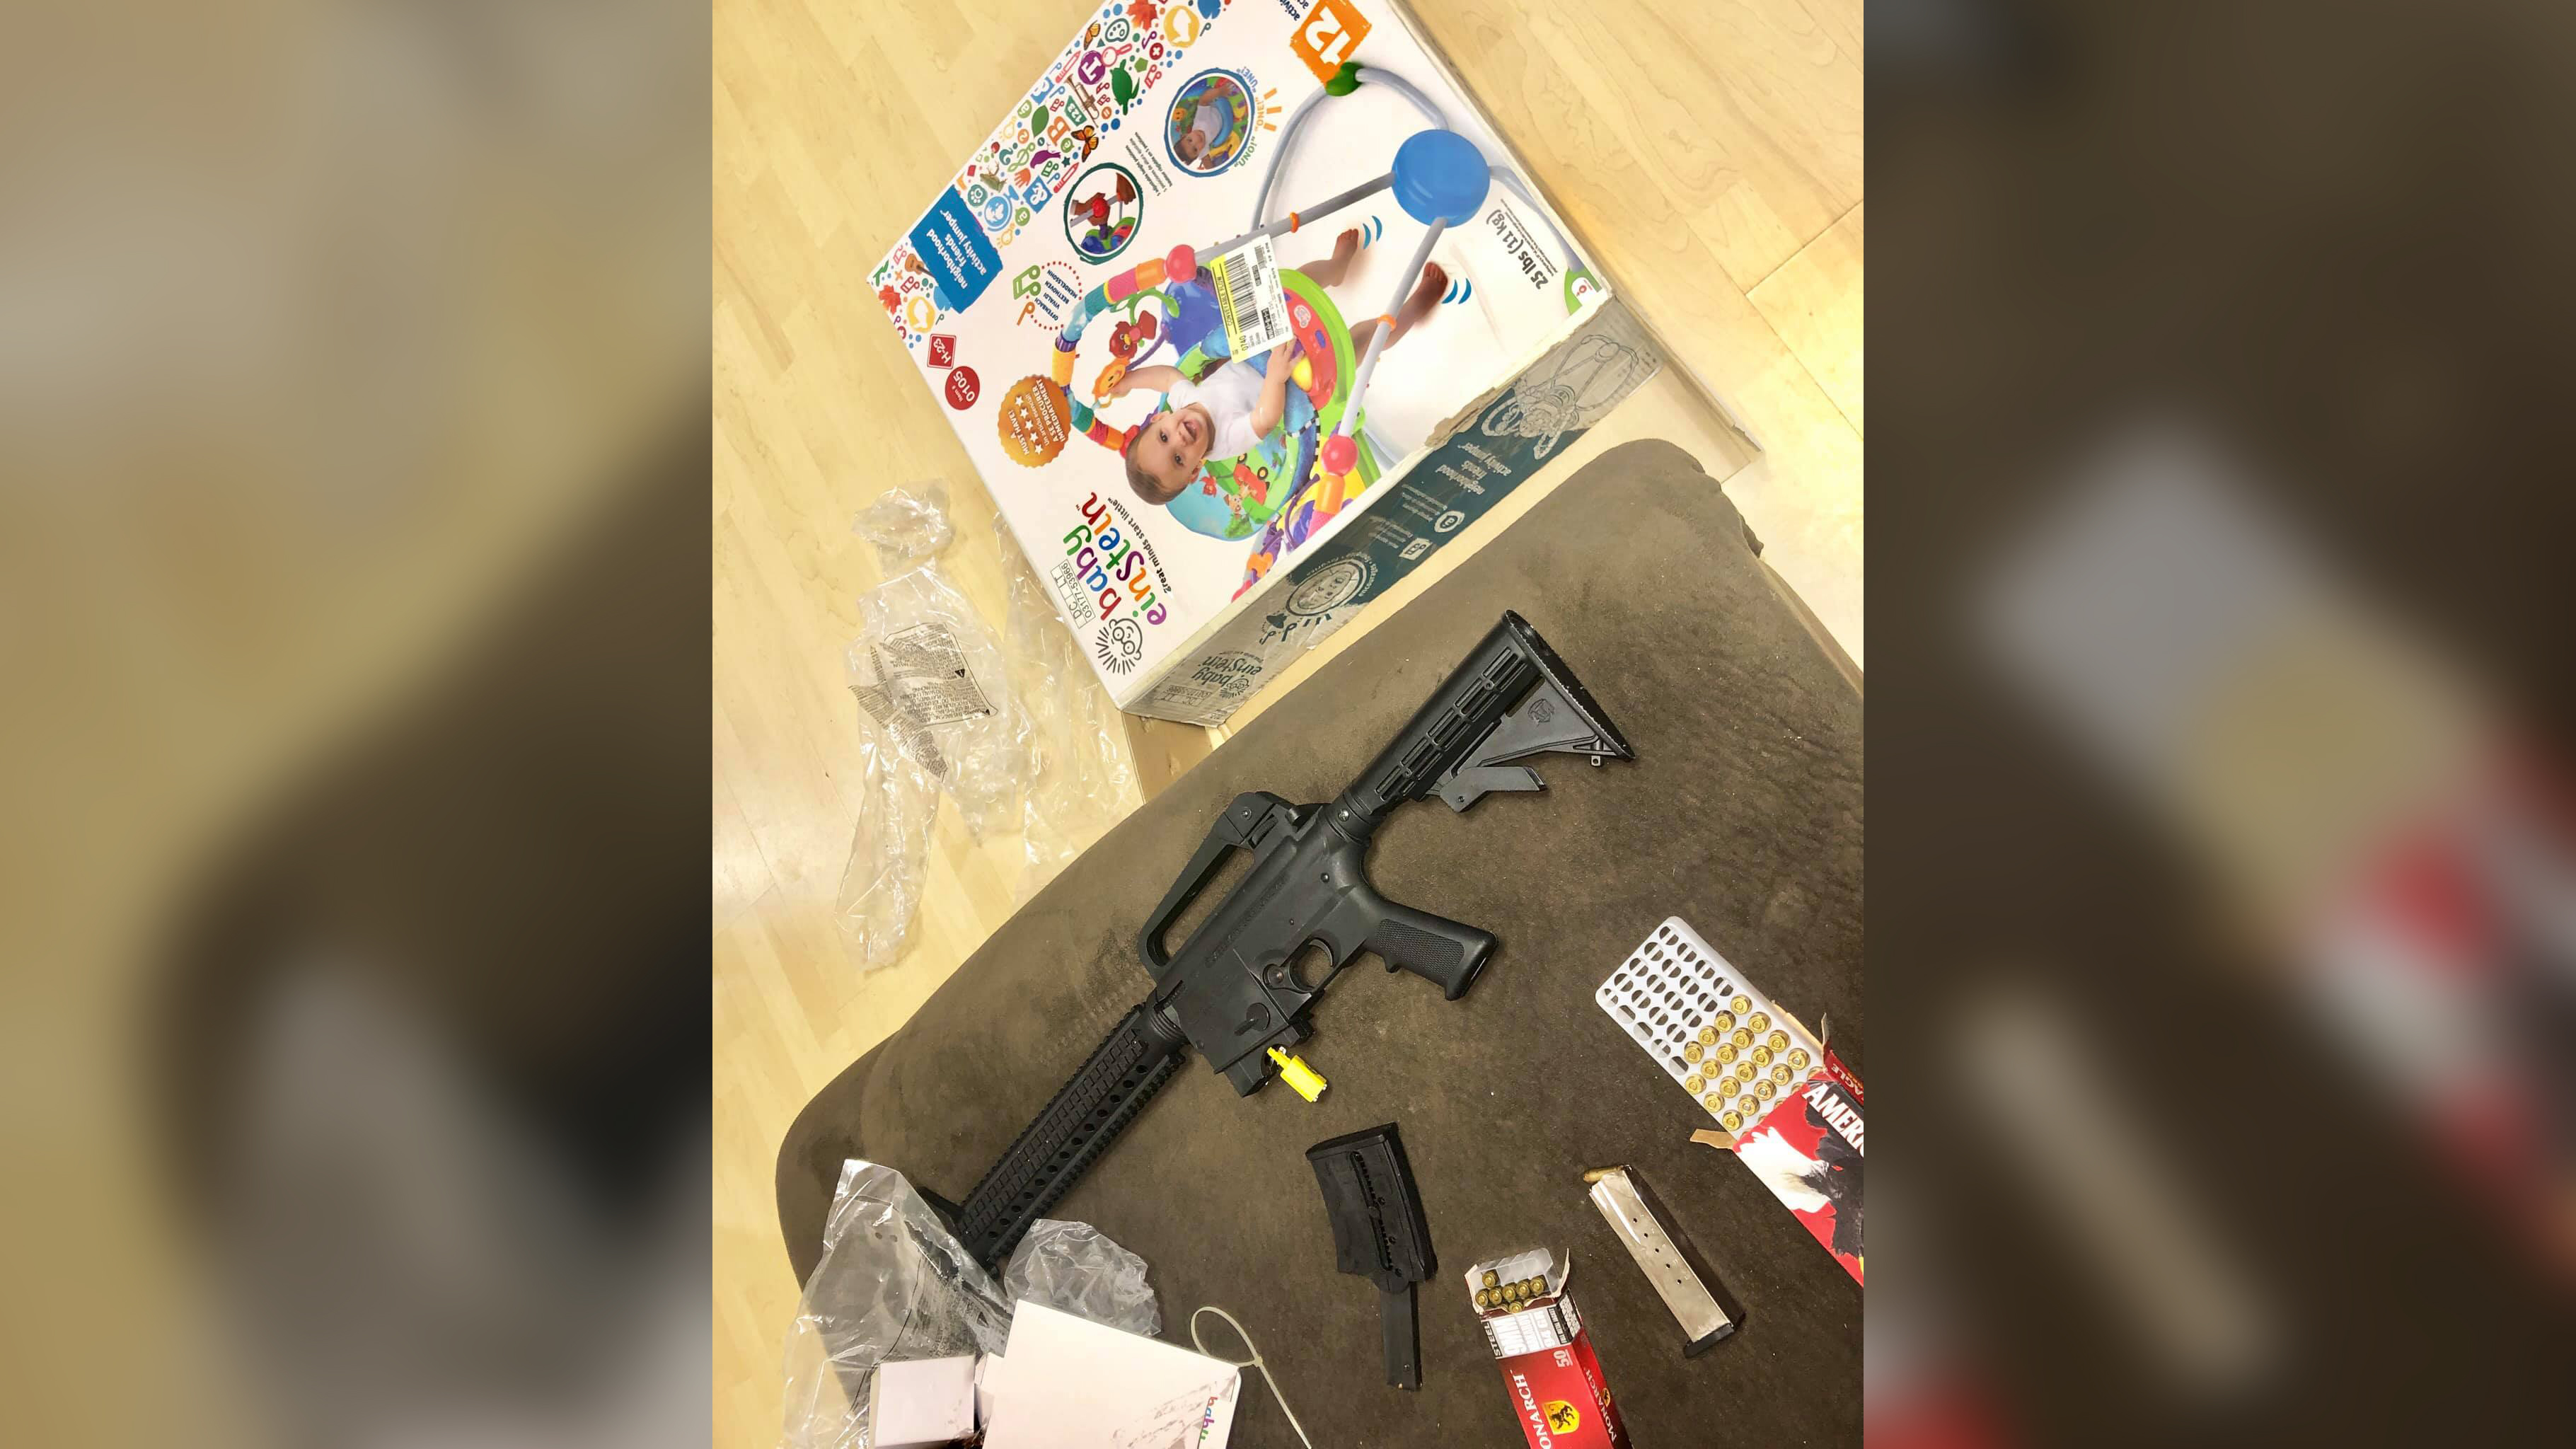 A woman bought a gift at Goodwill. Instead of a baby bouncer, she says she found a loaded semi-automatic rifle inside